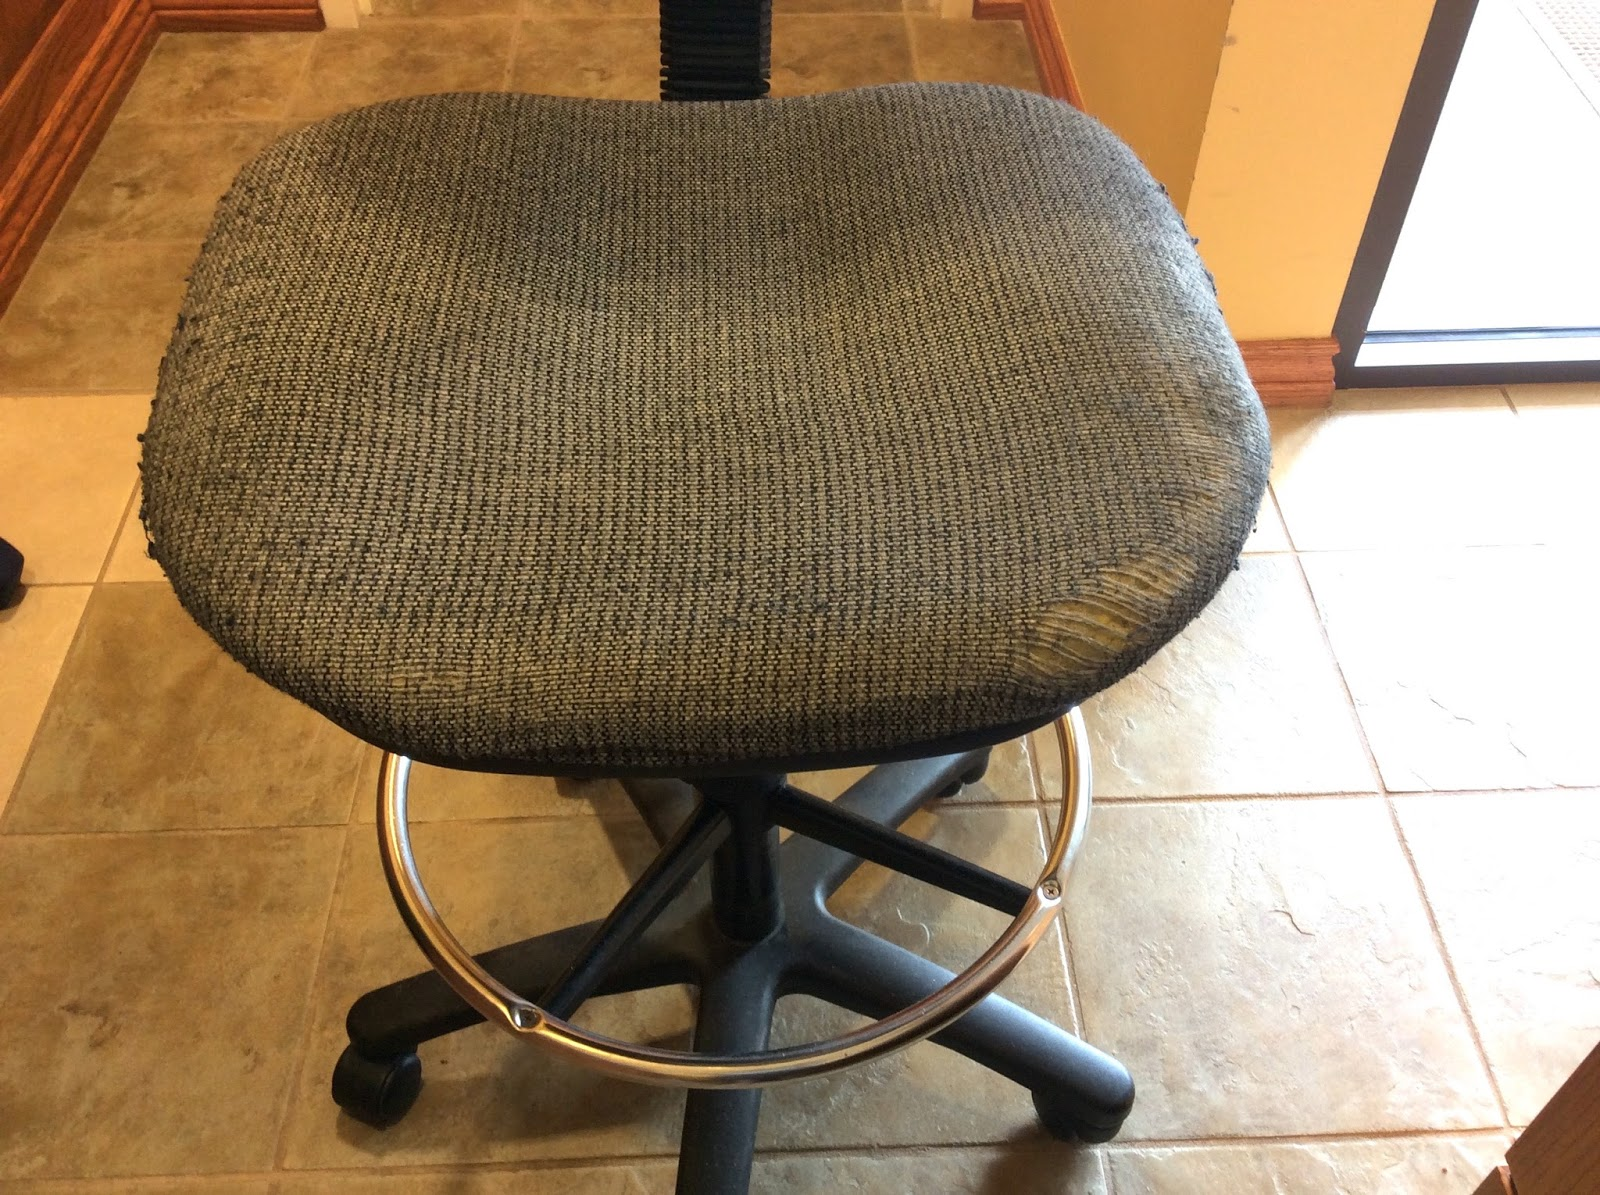 Reupholster Office Chair Ccoatsofmanycolours Reupholstering My Office Chair